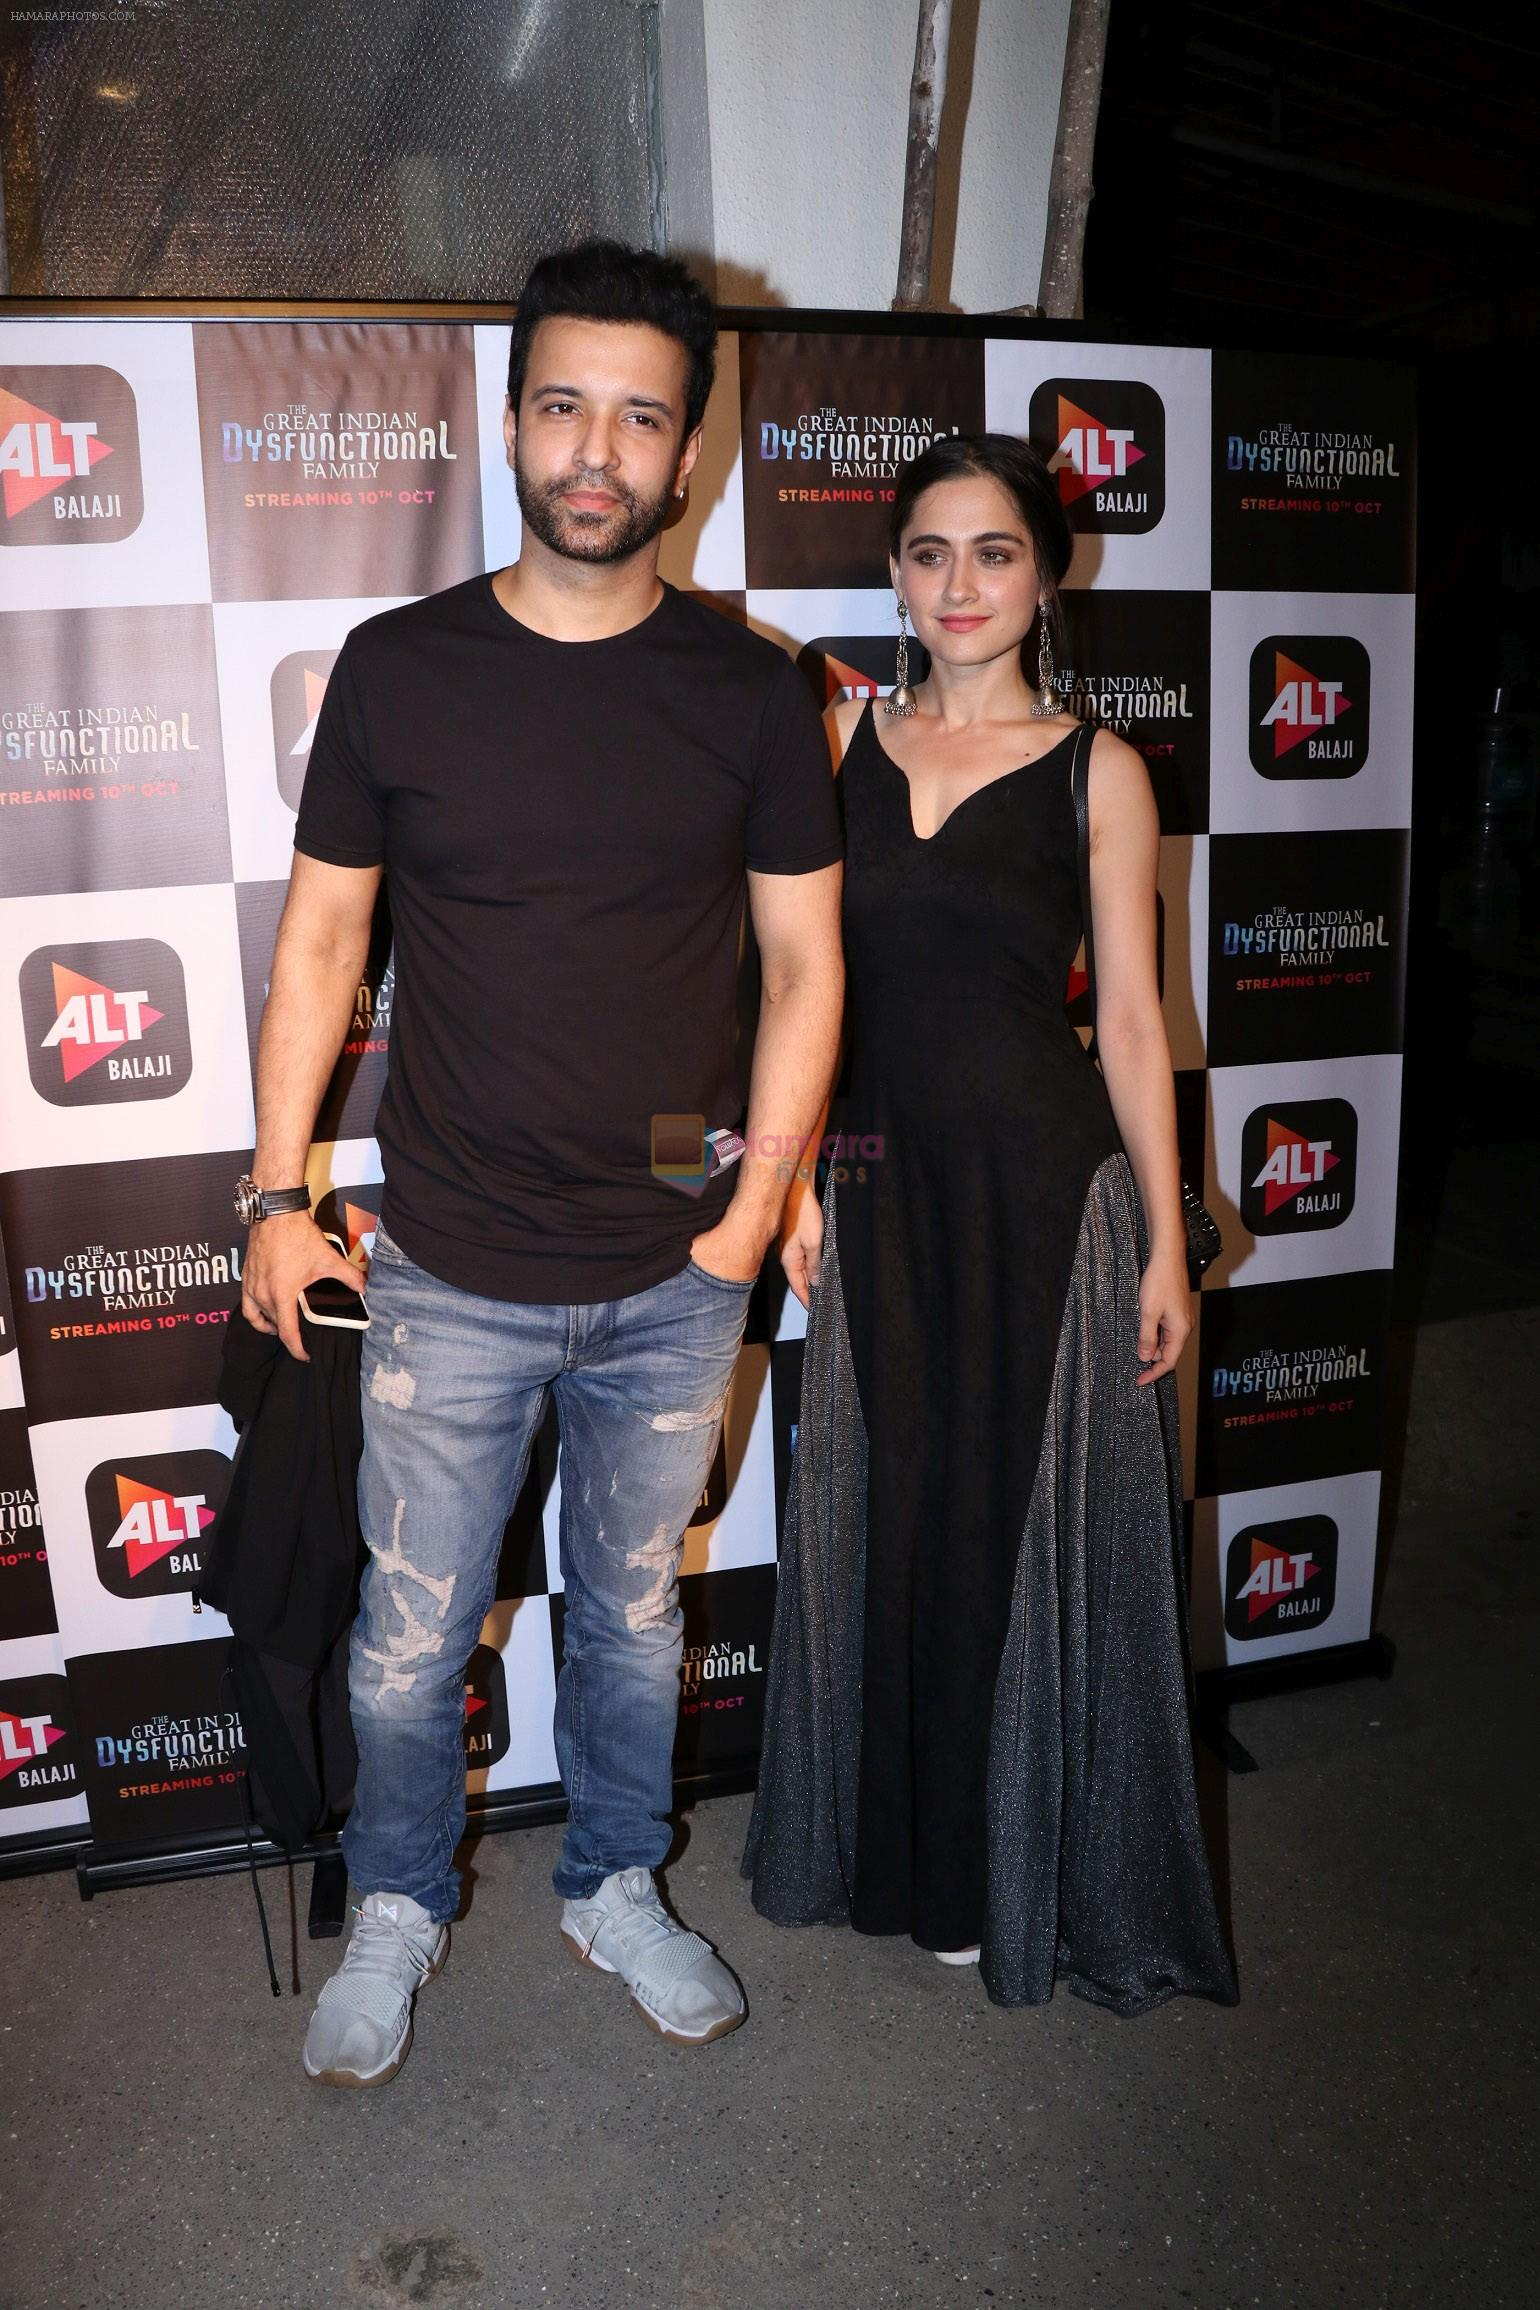 Aamir Ali, Sanjeeda at the Screening of Alt Balaji's new web series The Dysfunctional Family in Sunny Super Sound juhu on 10th Oct 2018